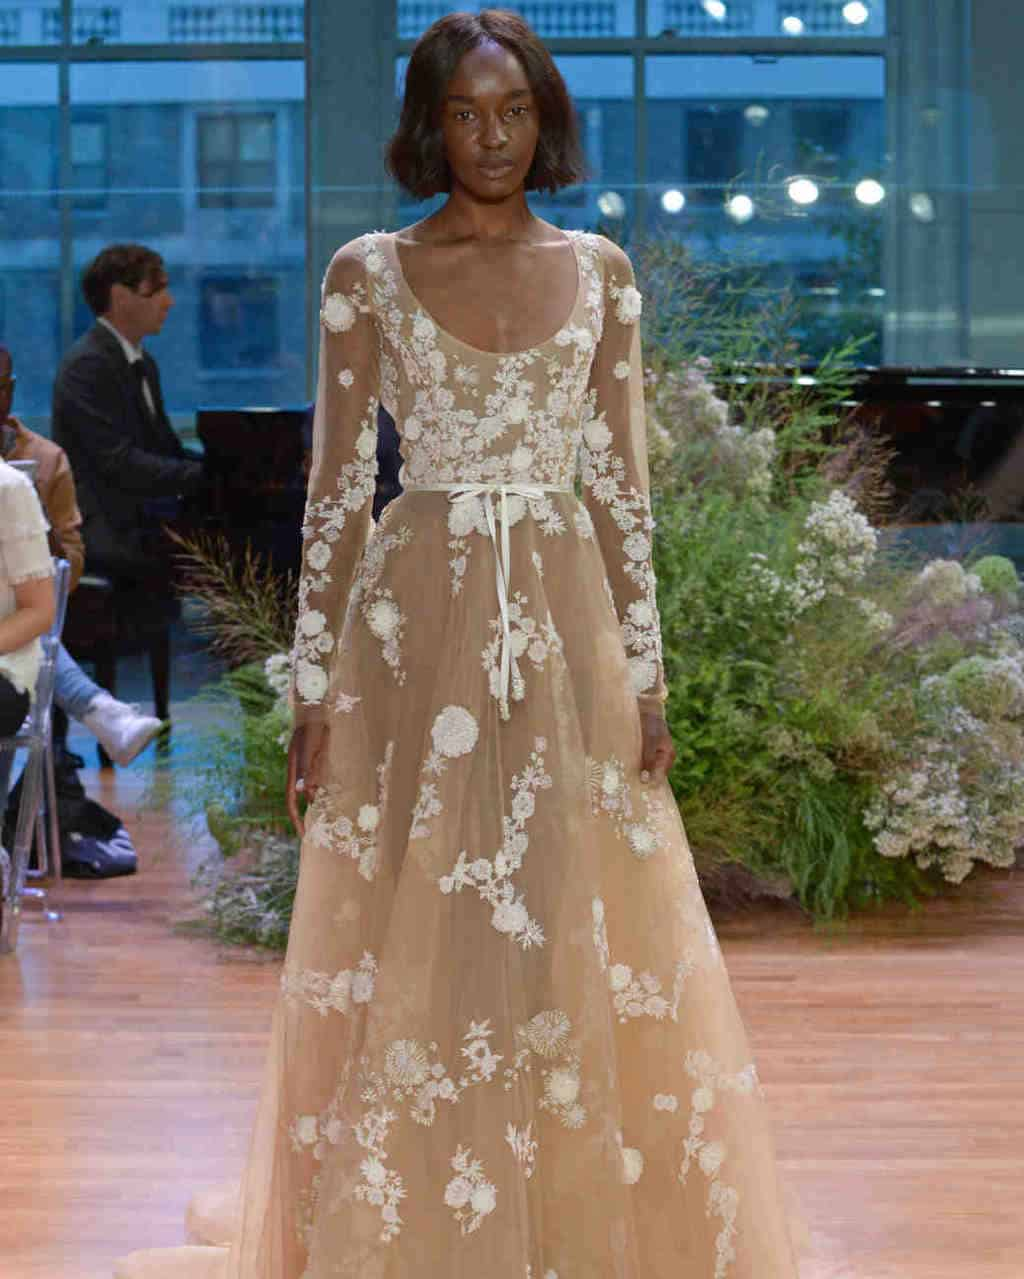 Monique-Lhuillier-wedding-dress-fall2017-62033510-010_vert